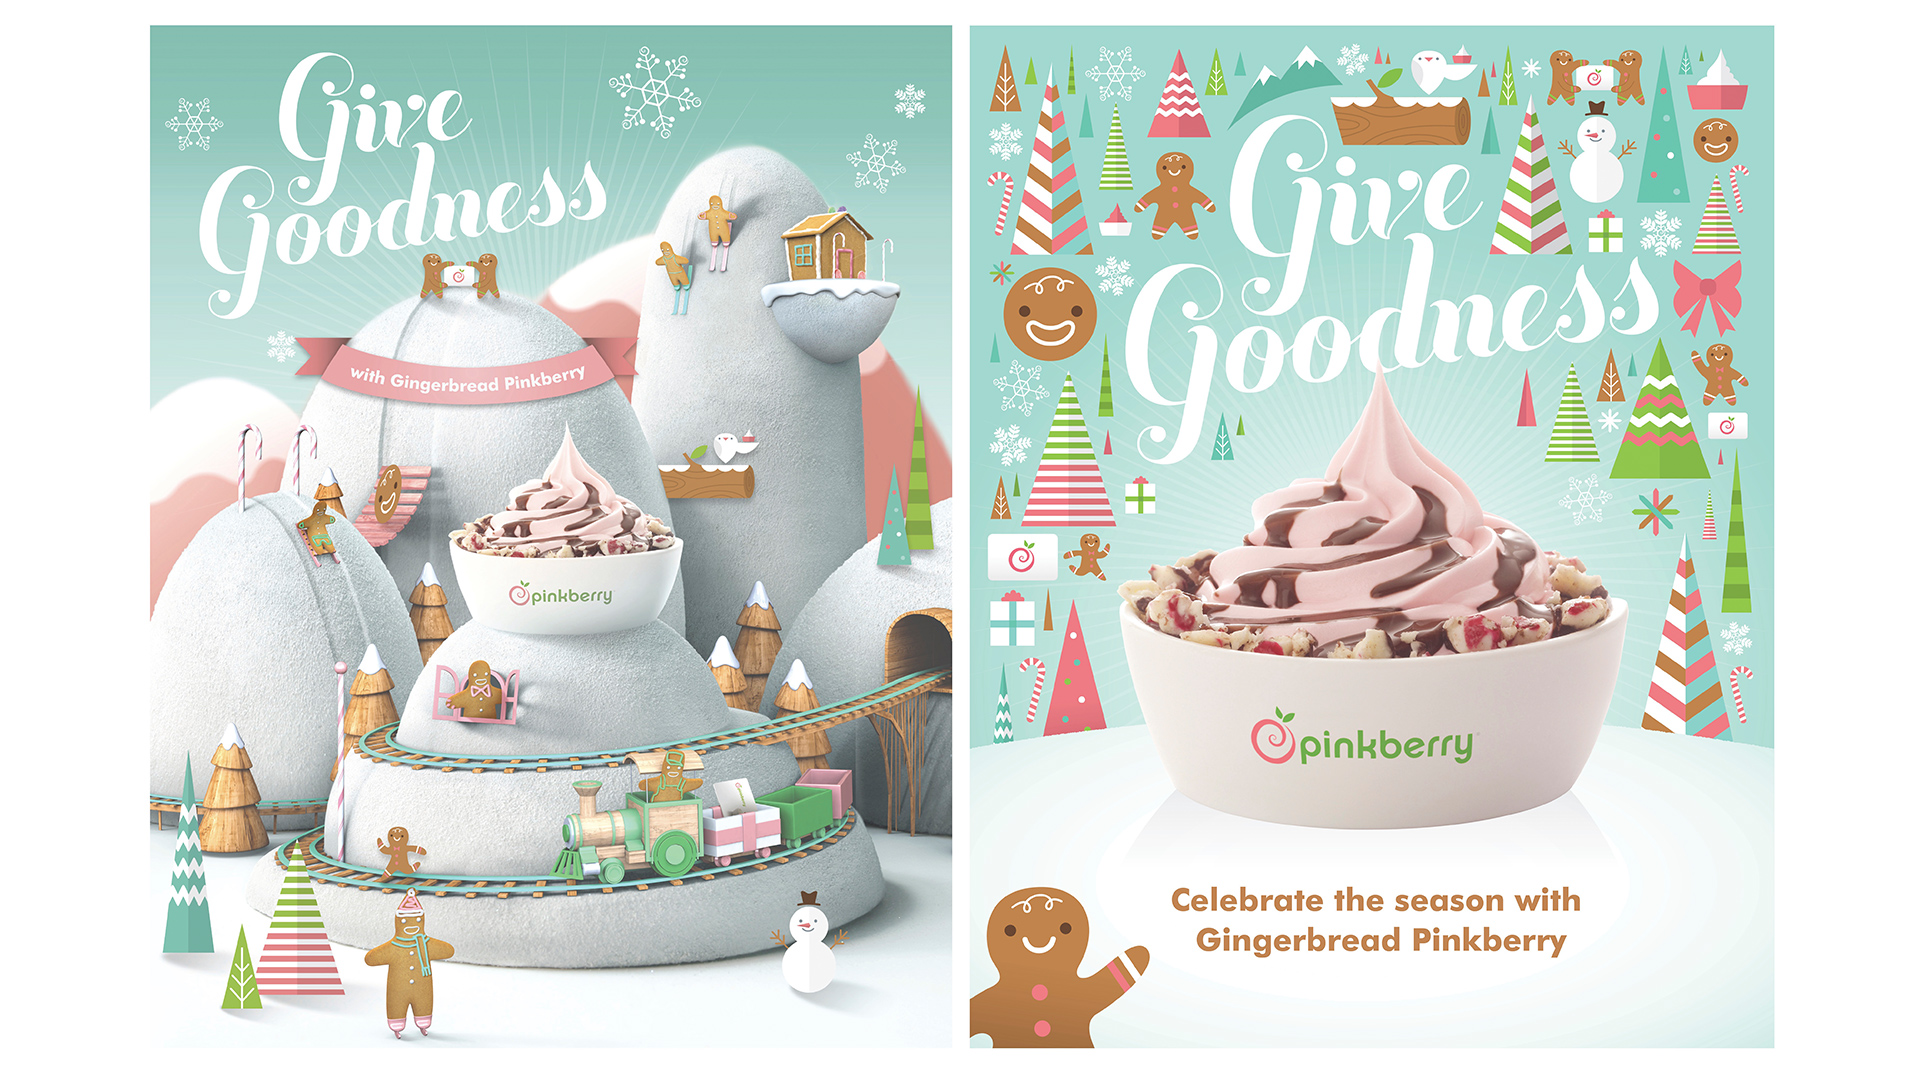 pinkberry_02_campaigns-4